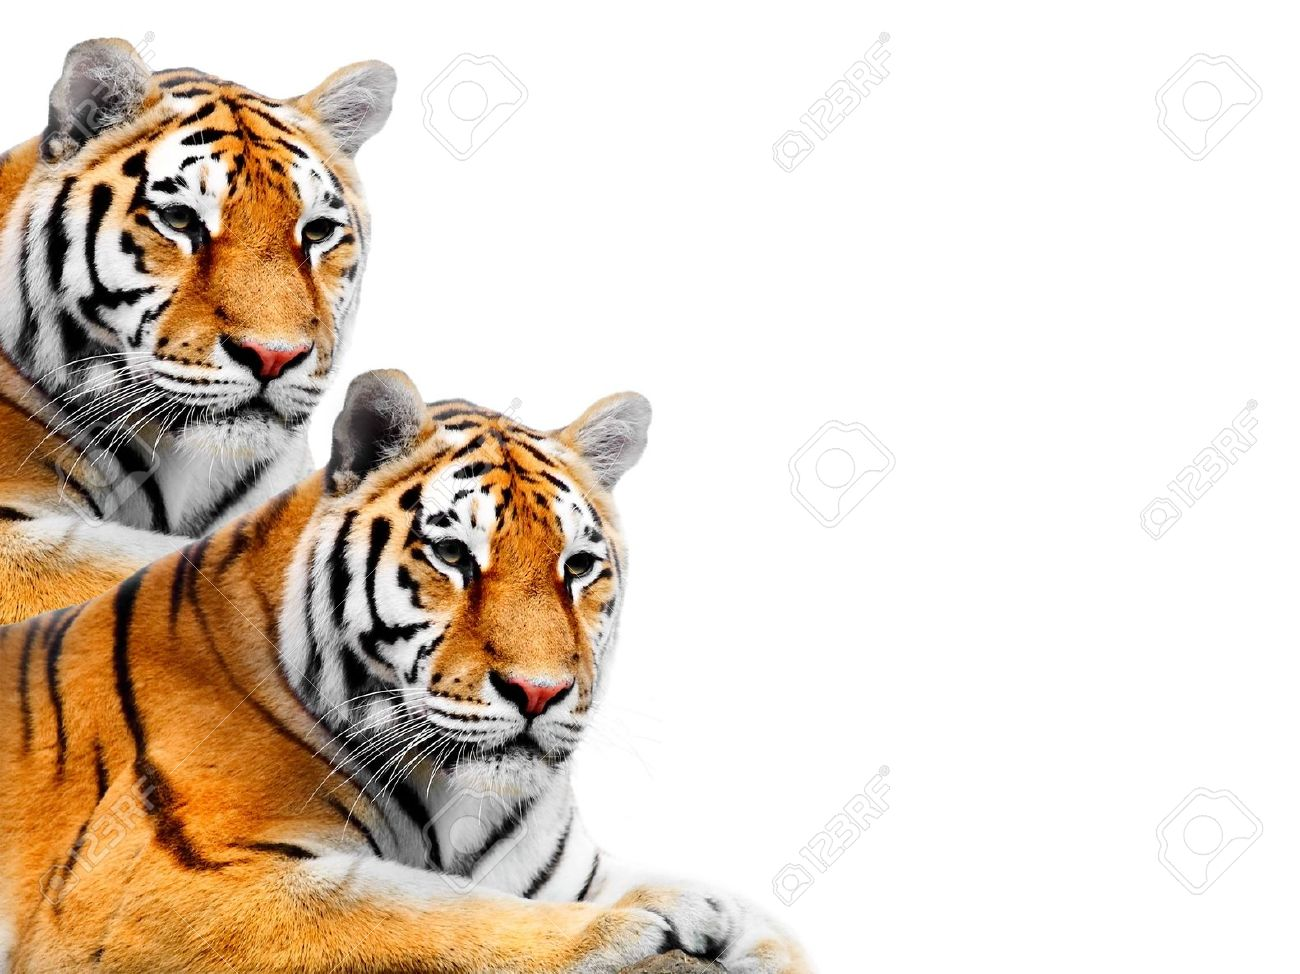 Big Tiger on a white background Stock Photo - 903890